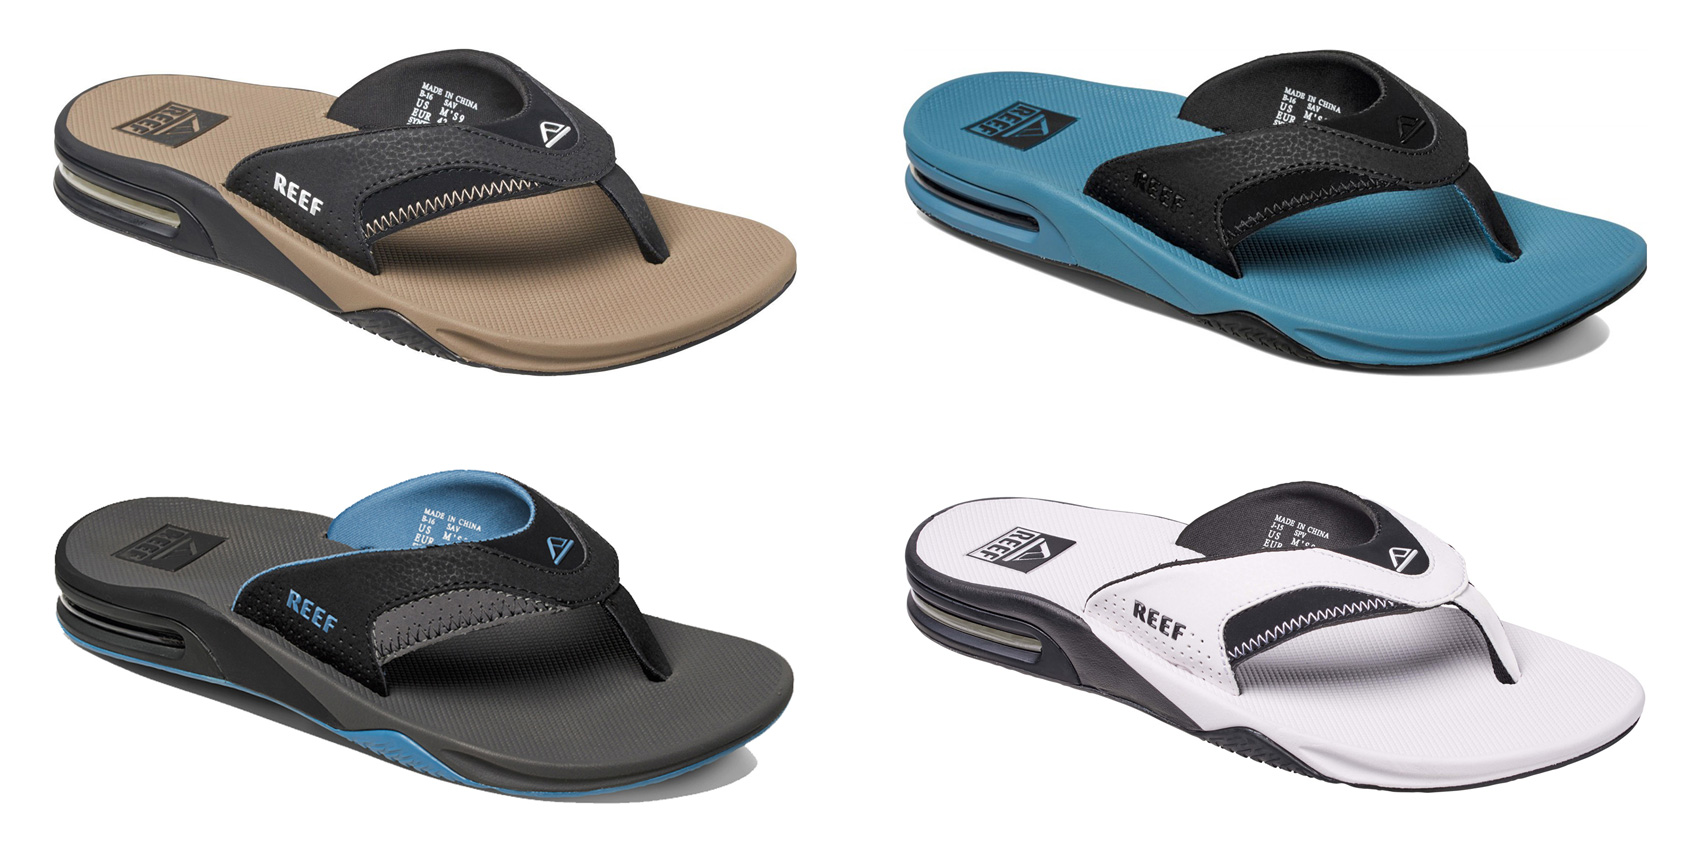 e7dc7f9ff9bf 10 Best Reef Sandals Reviewed   Rated in 2019